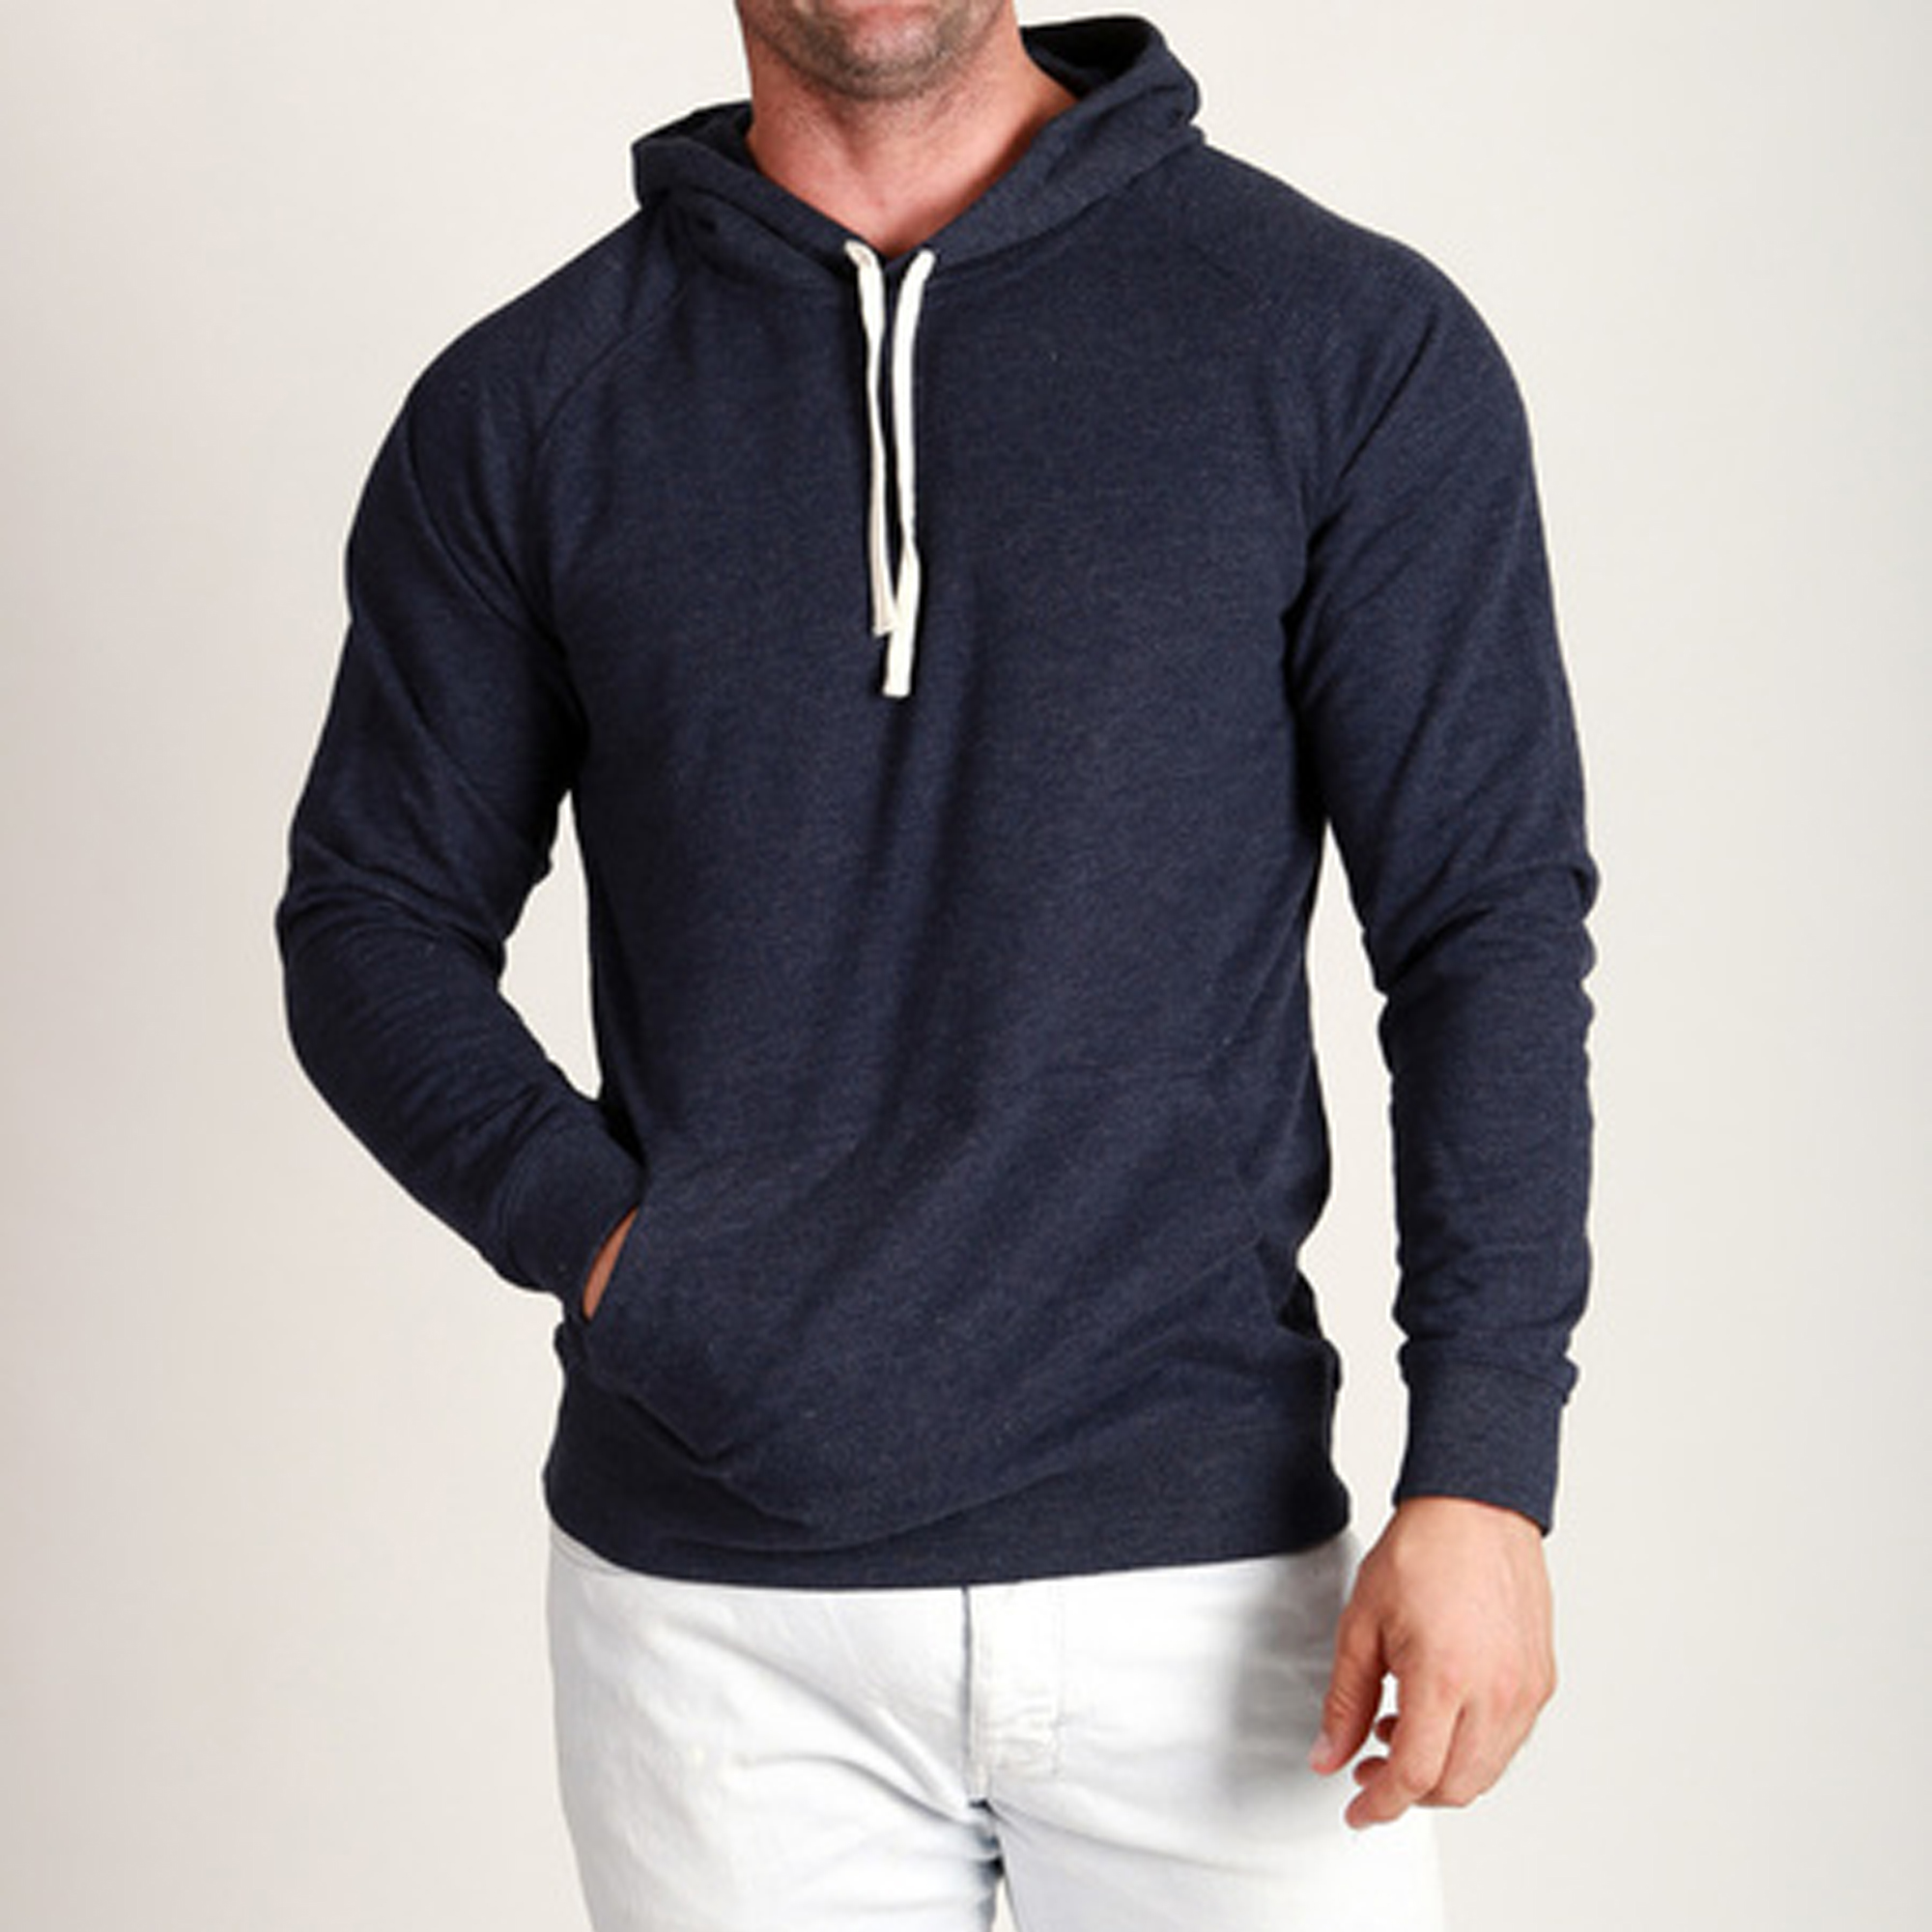 Custom Blank Hoodies Gym Workout Pullover Outdoor Exercise Hoodie For Mens